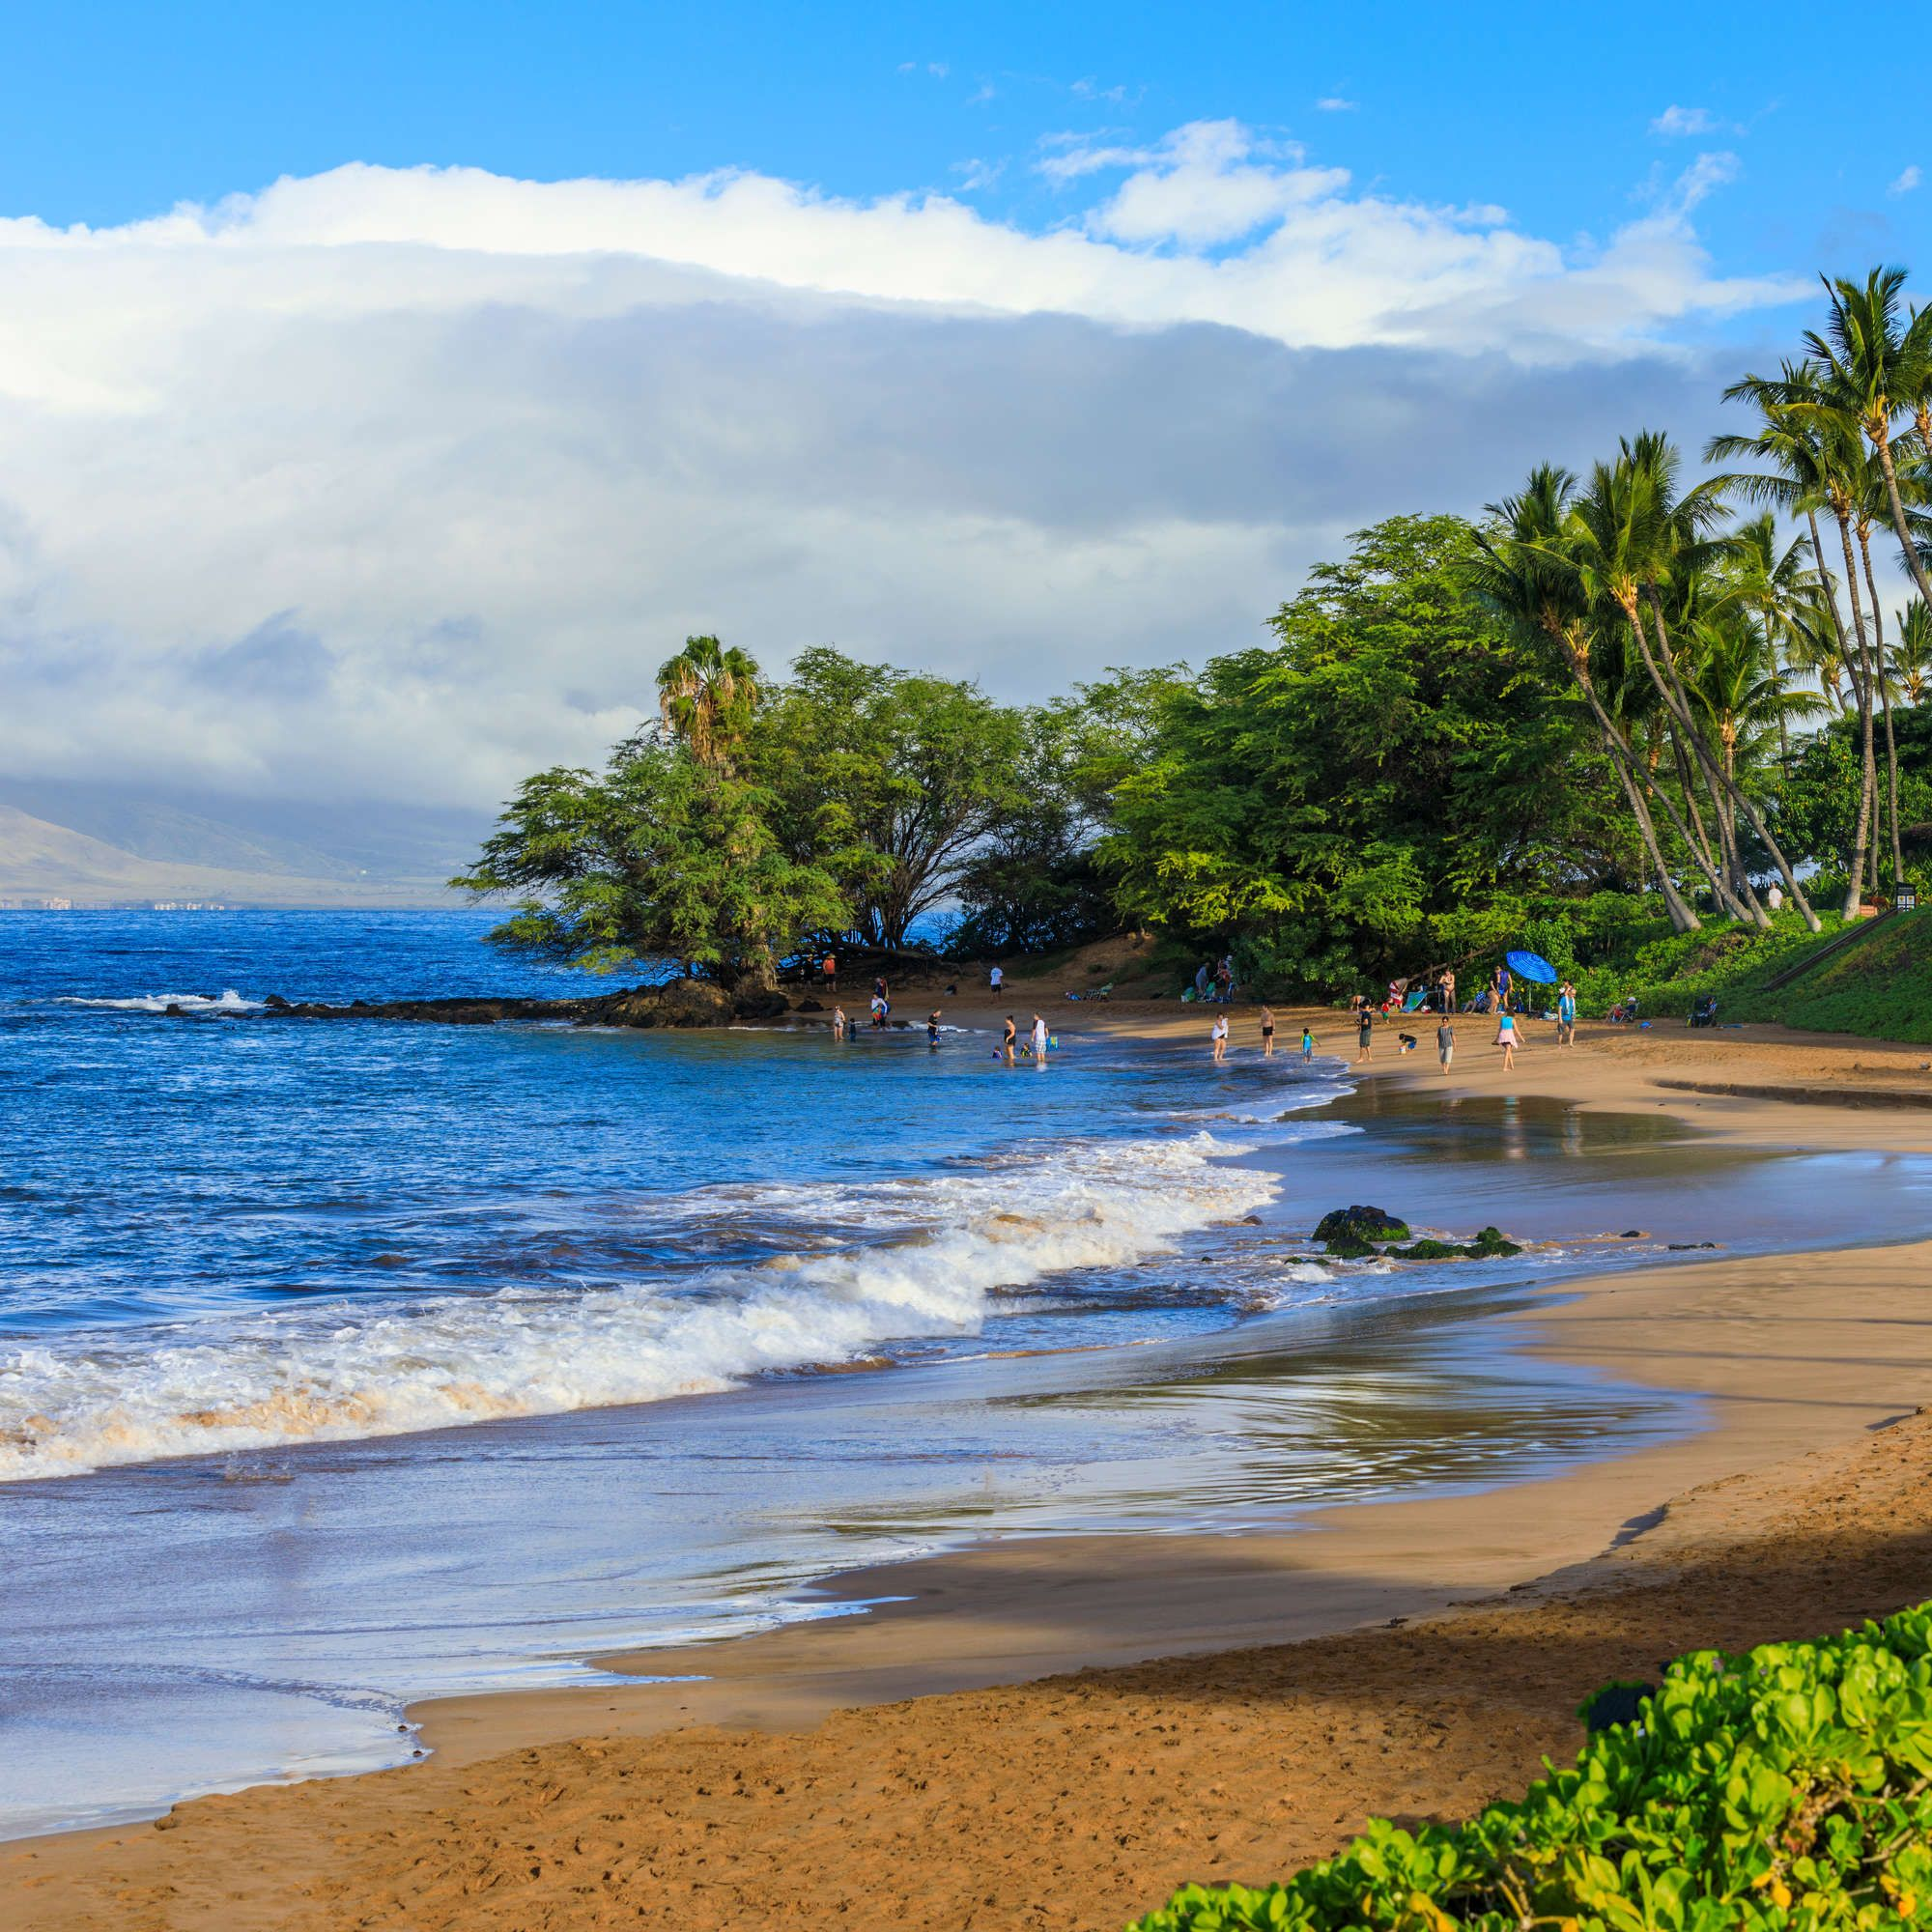 Best Beaches Big Island Hawaii: The Very Best Beaches On Hawaii's Big Island